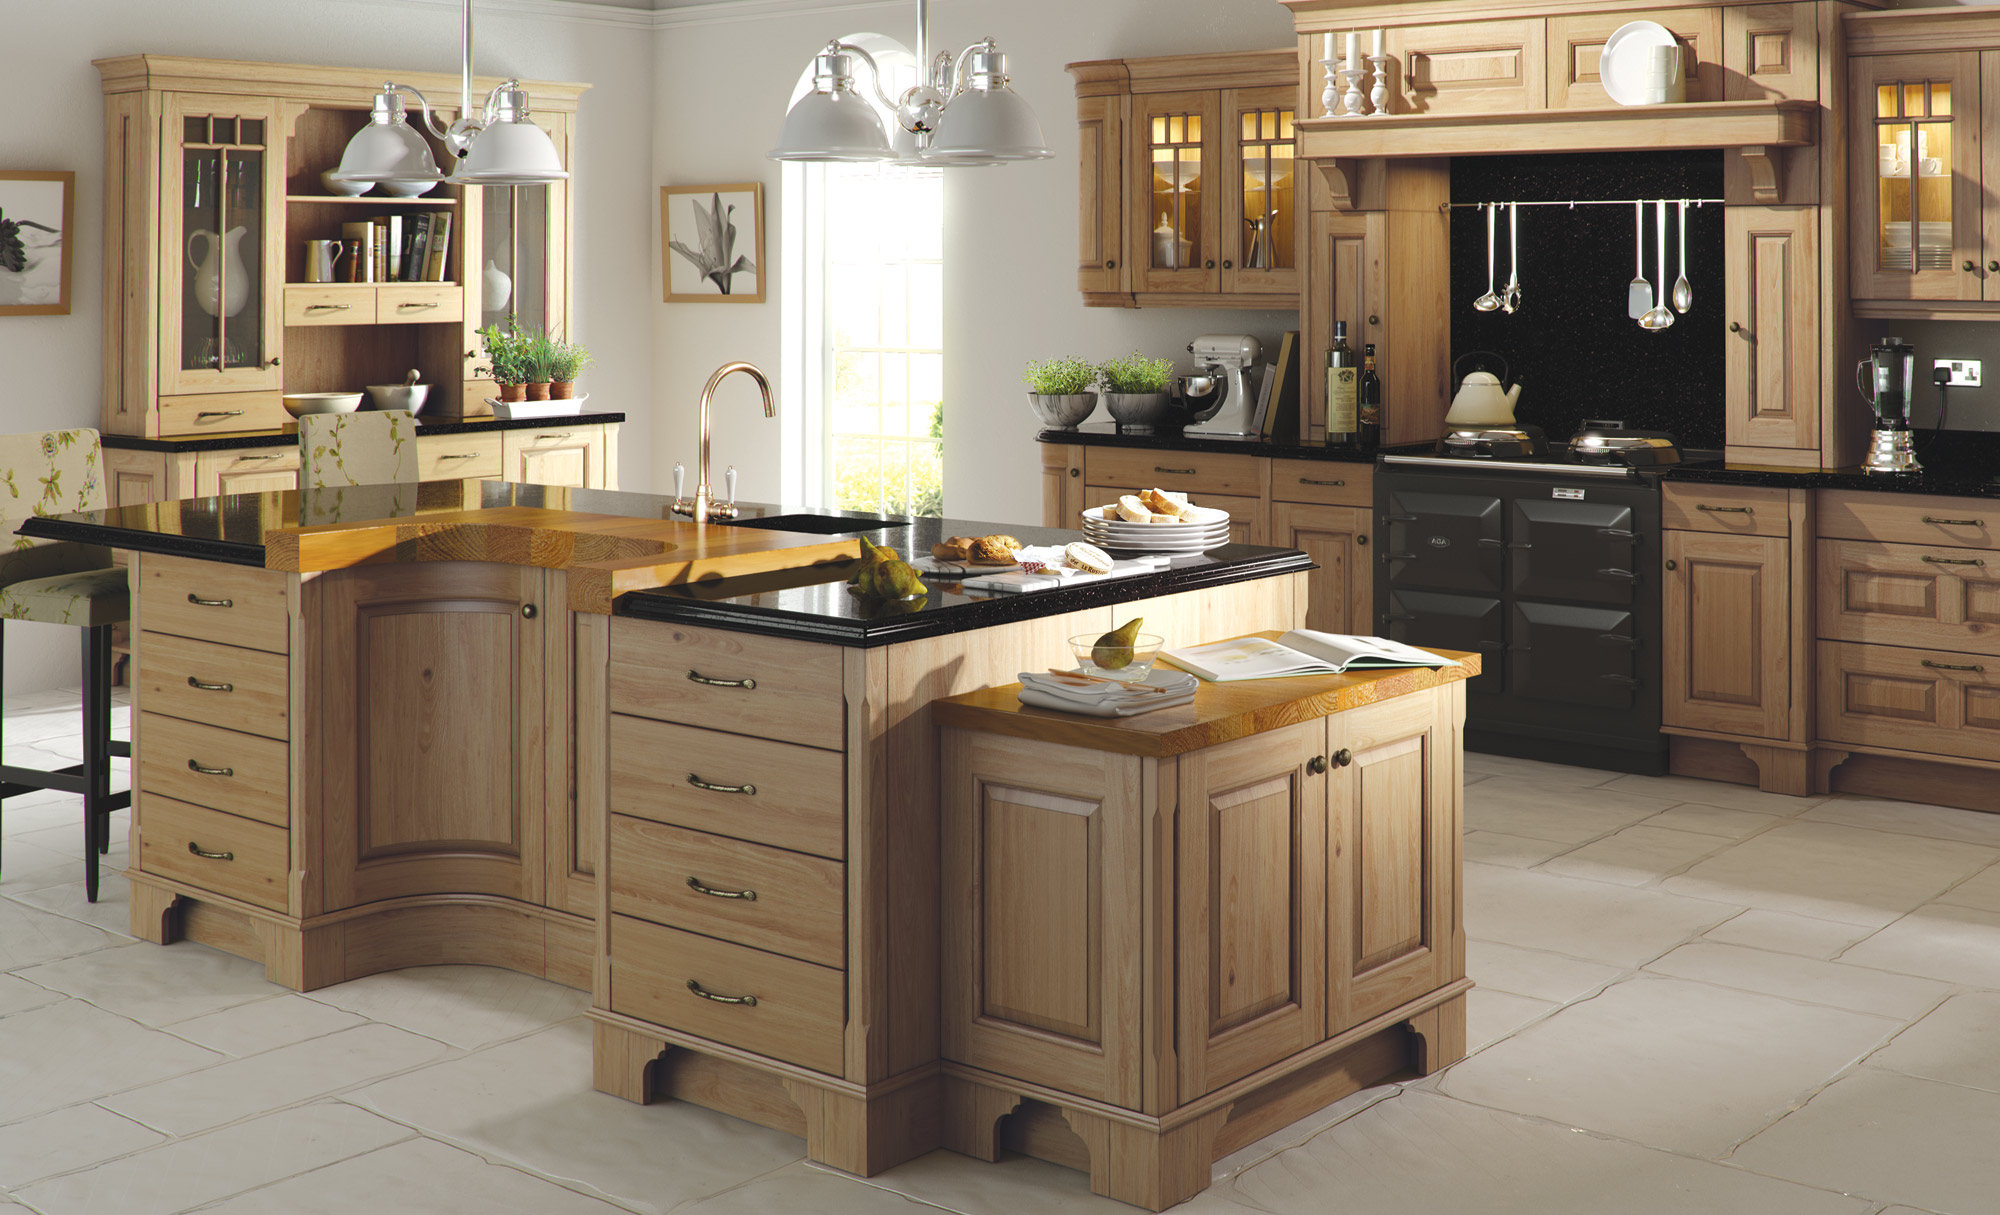 kitchen cabinets uk wallingford vision design vision design 21300